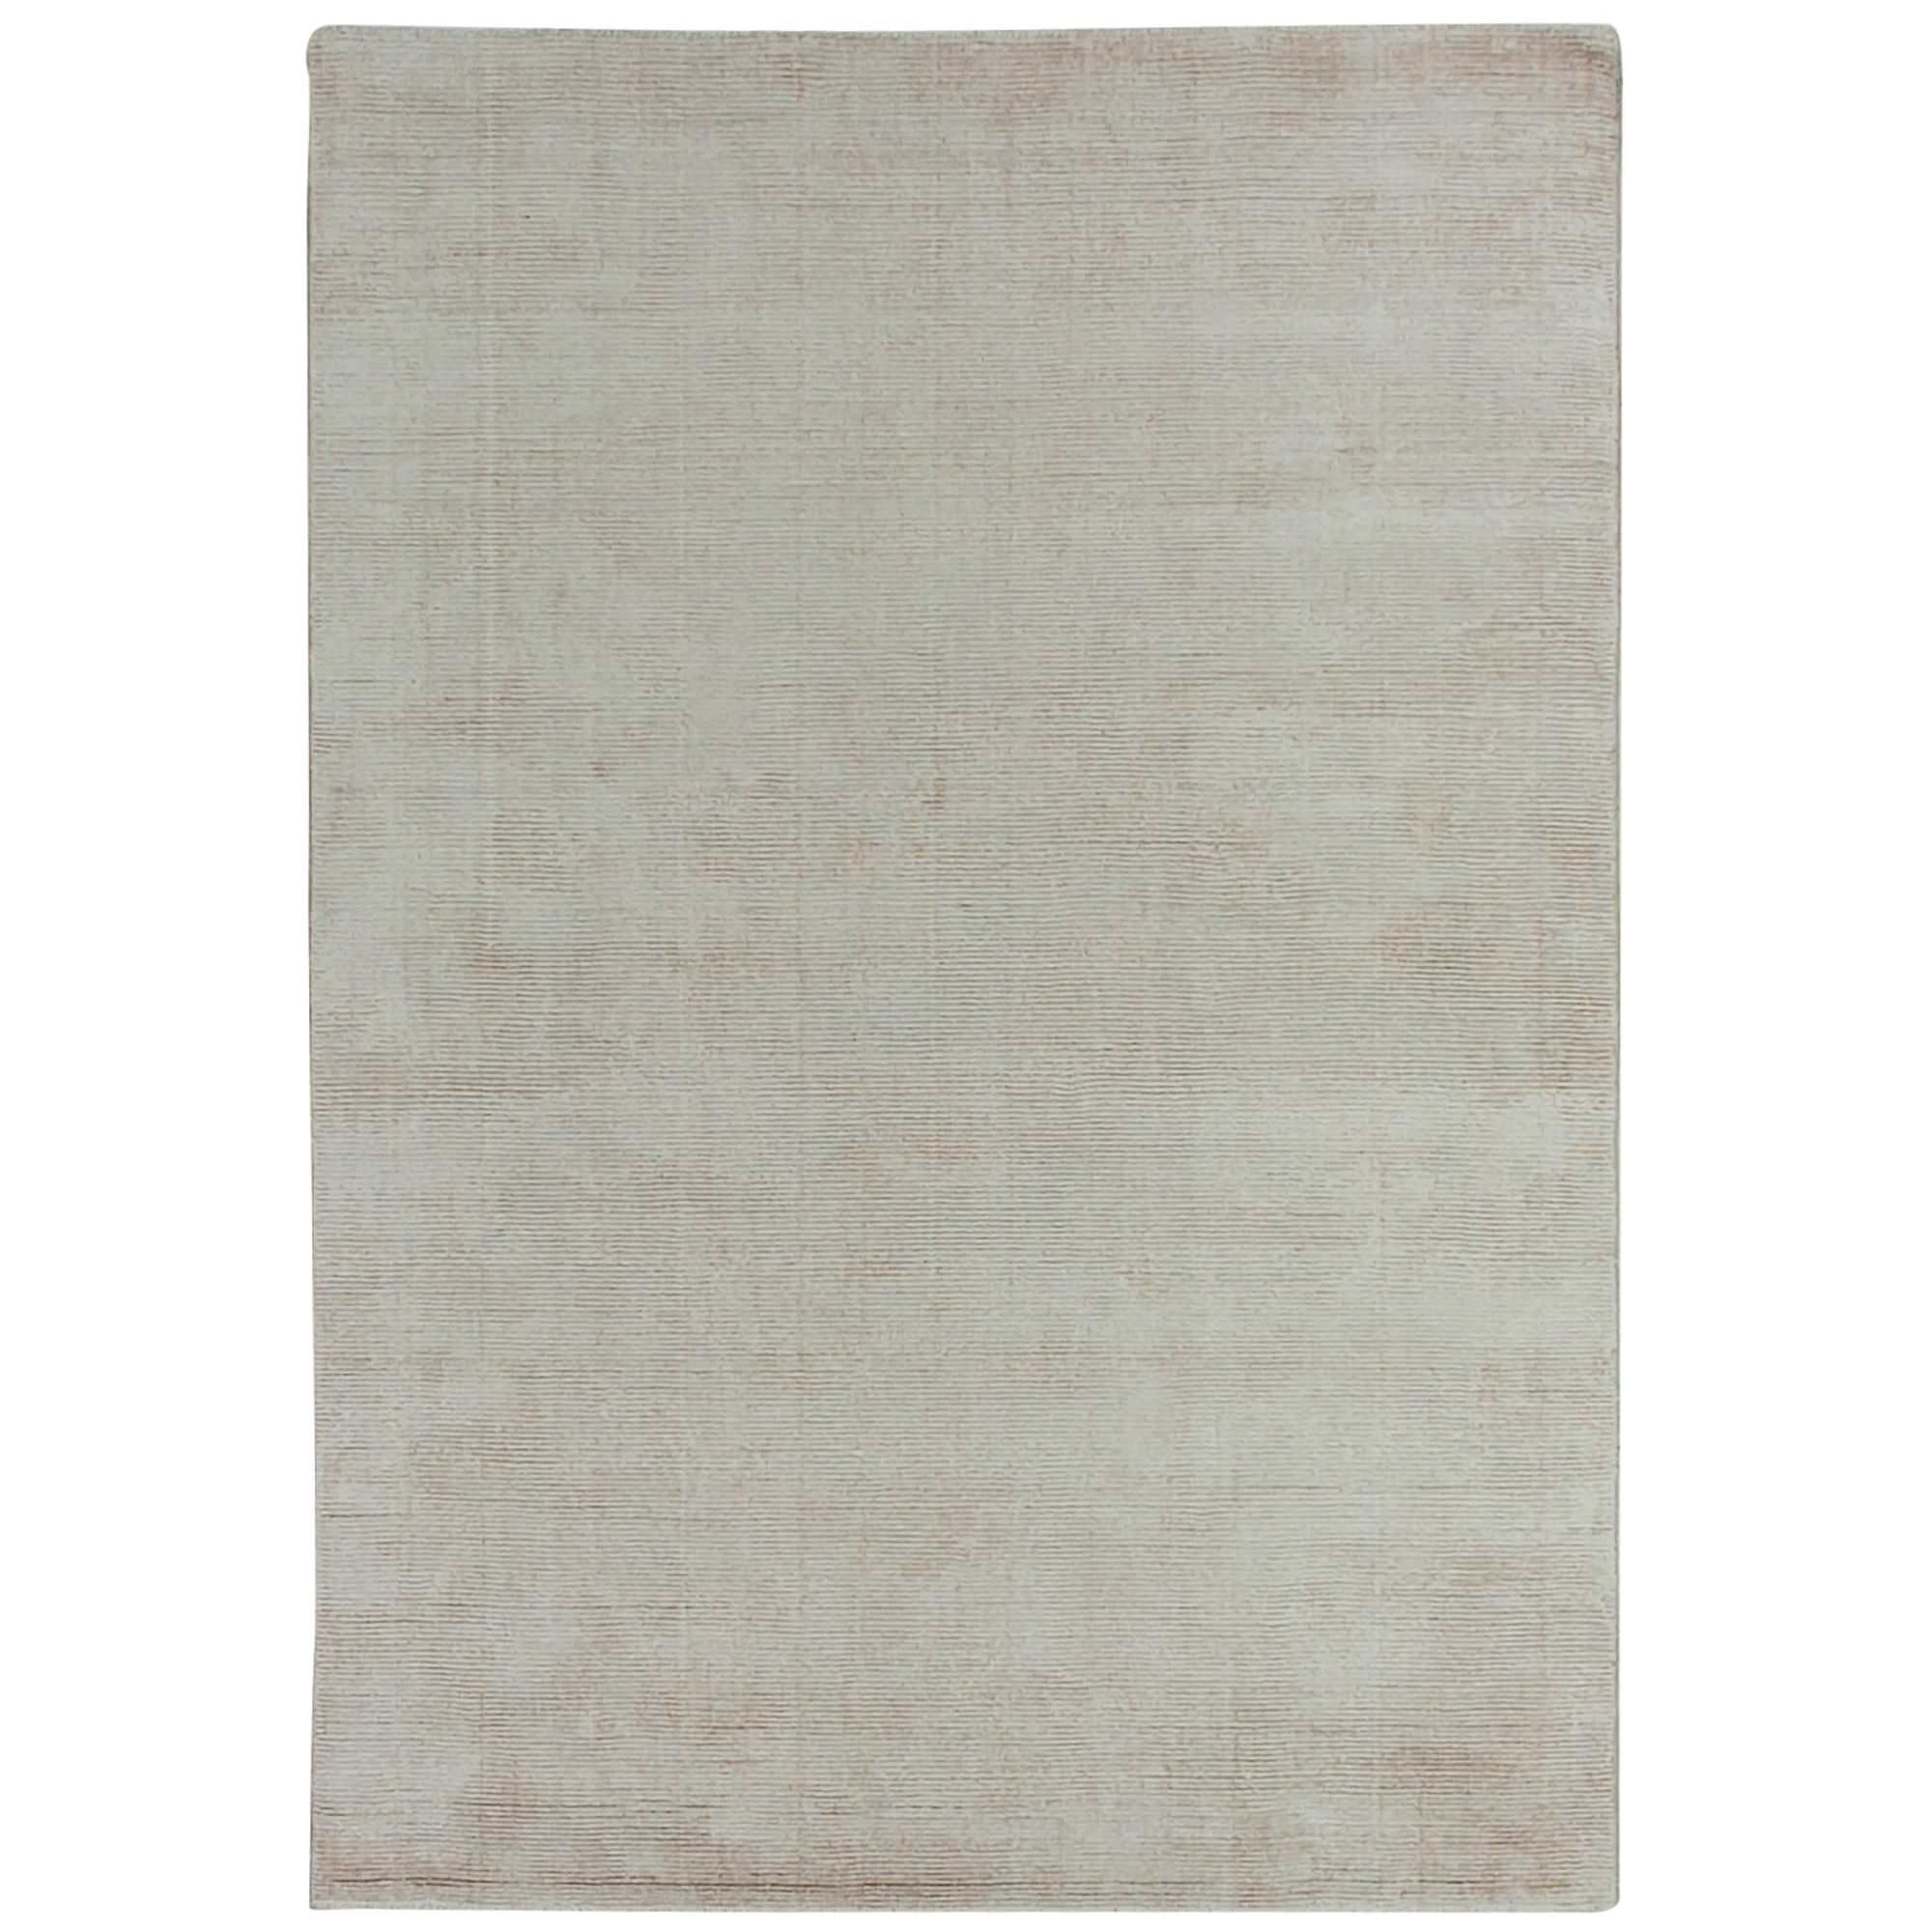 Elements Hand Knotted Wool Rug, 250x350cm, Beige